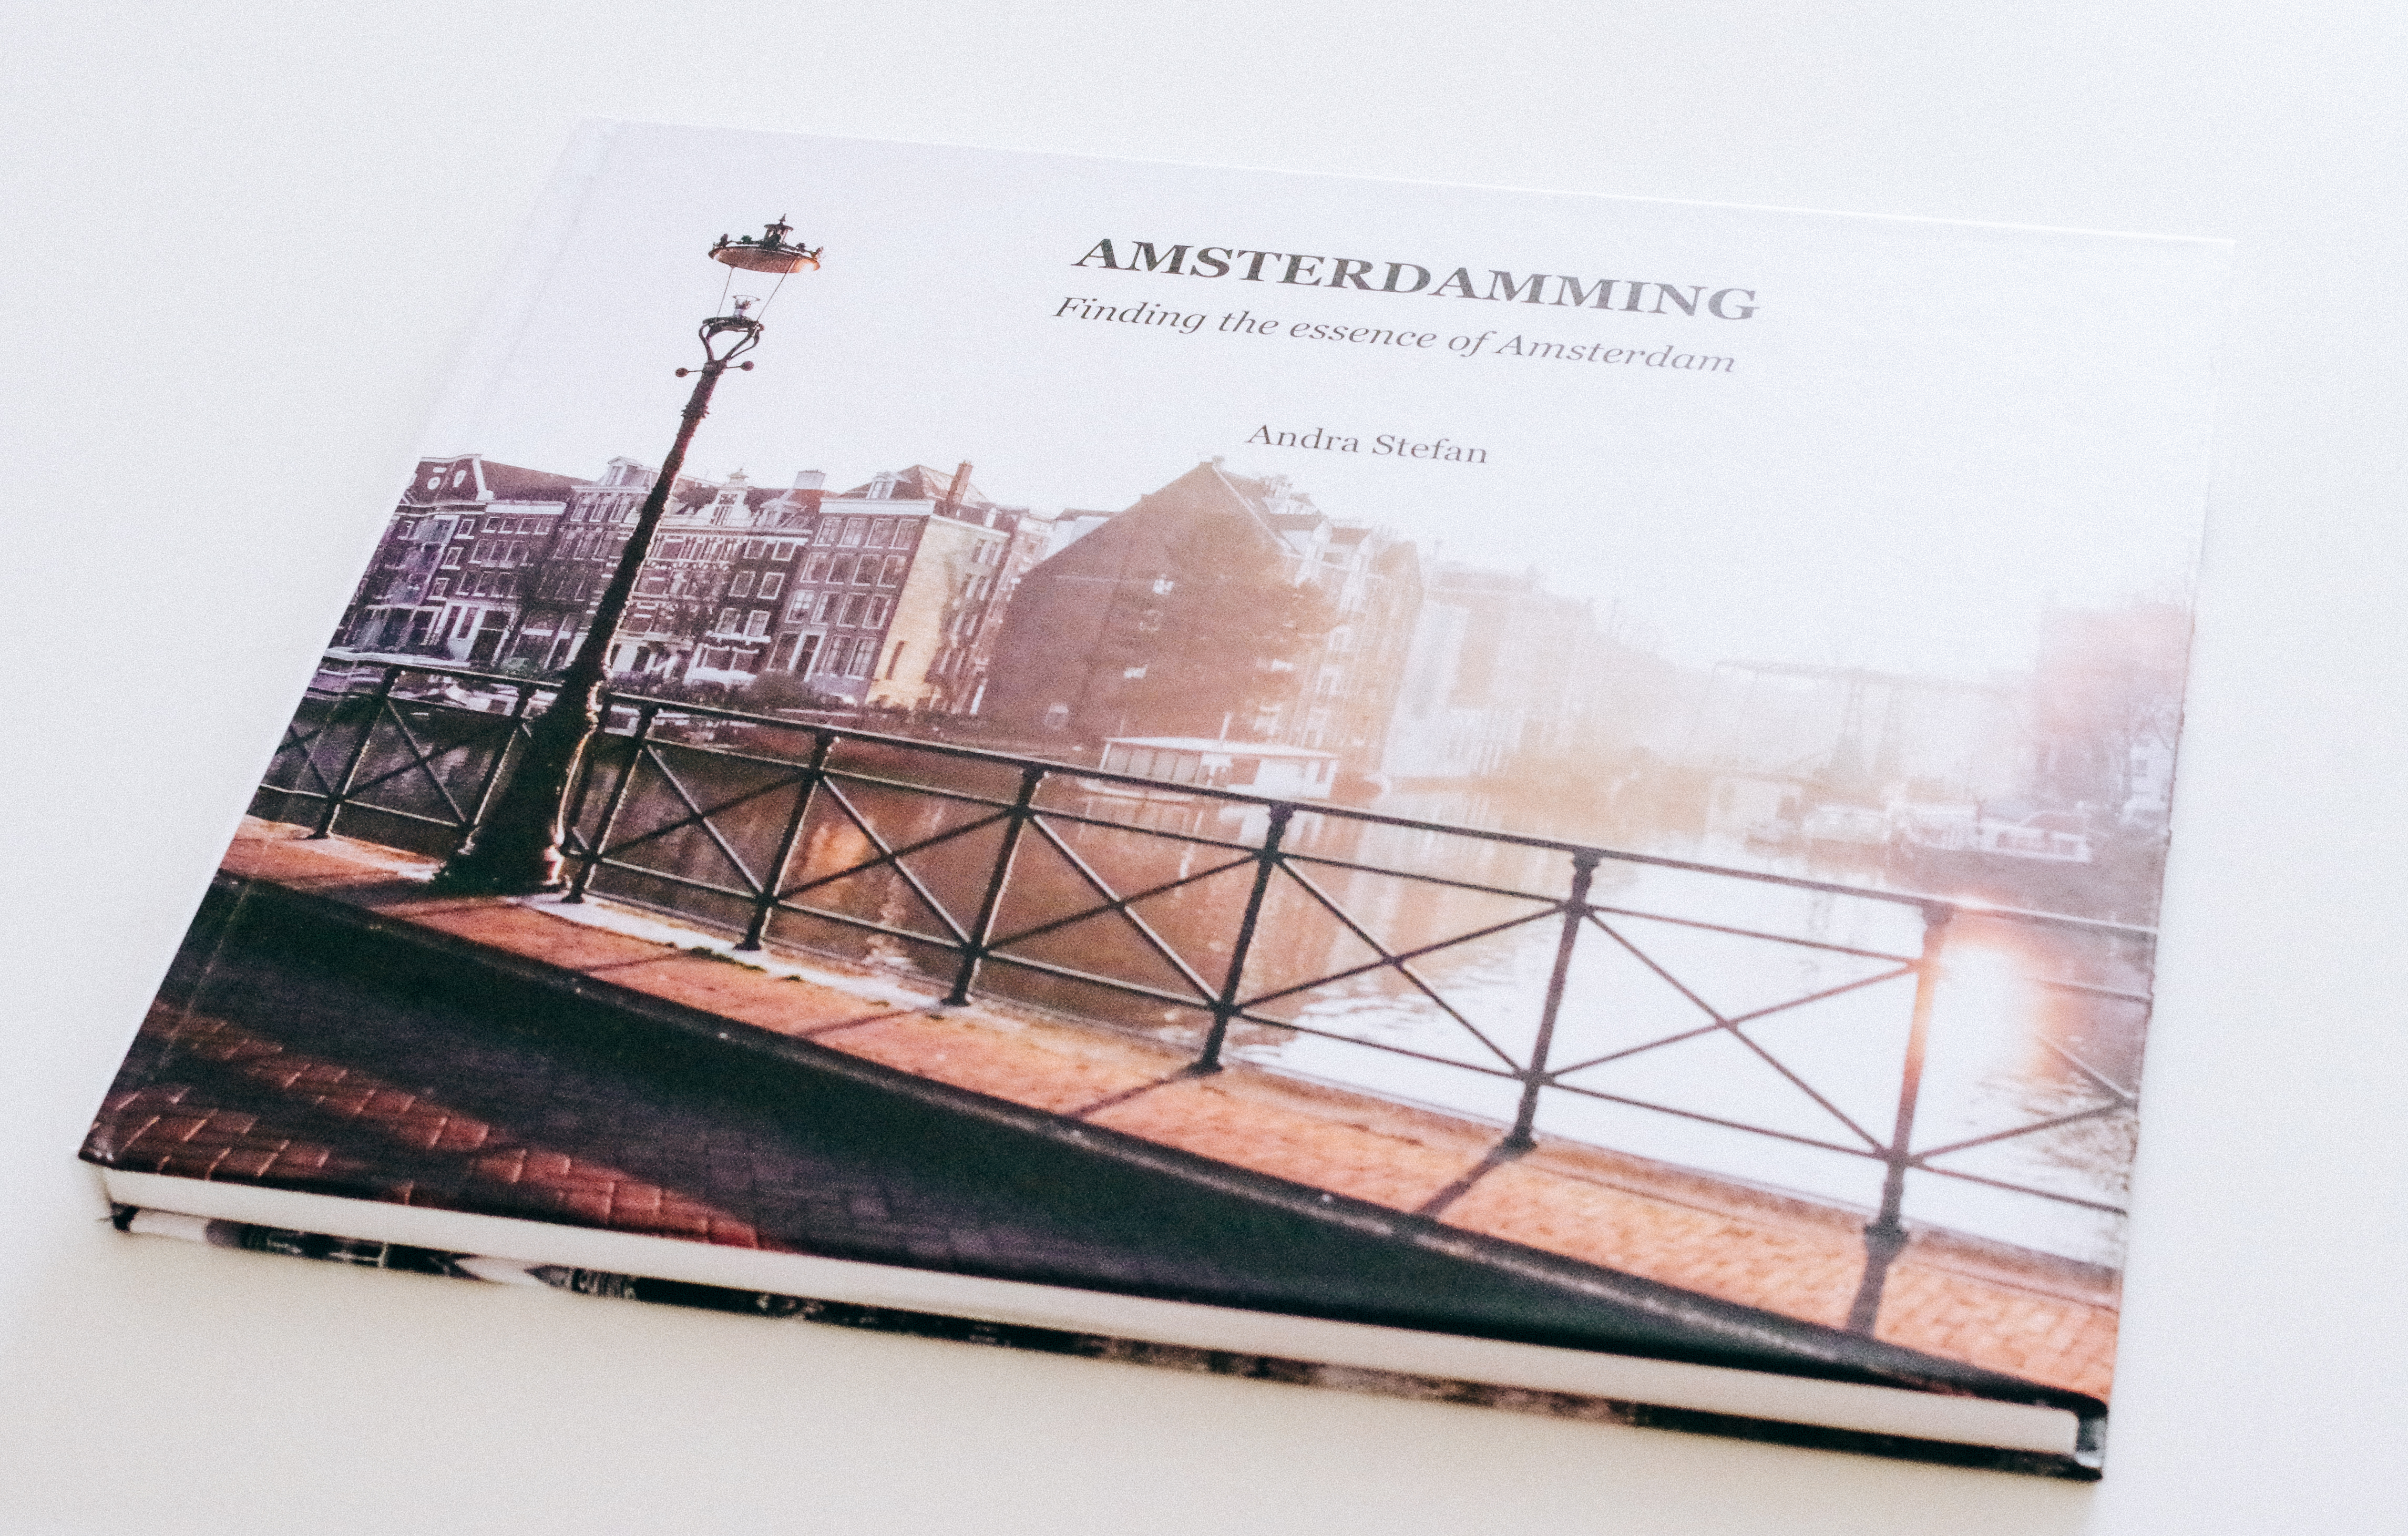 Amsterdamming book-1